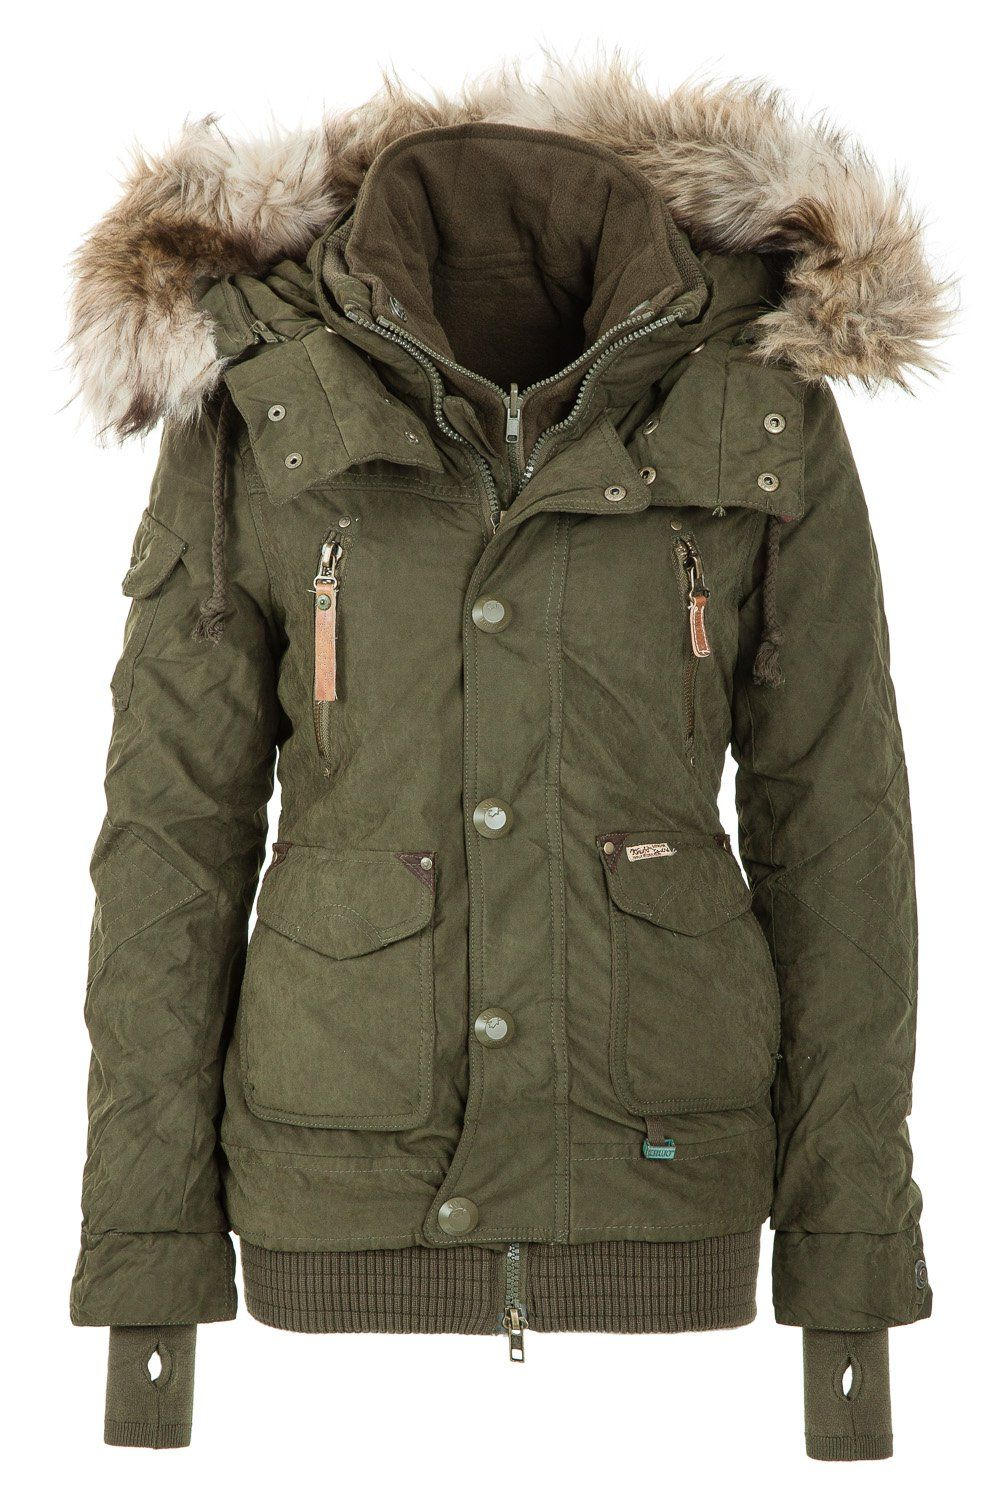 Khujo Women\'s Winter Jacket Margret Olive 320 http://www.